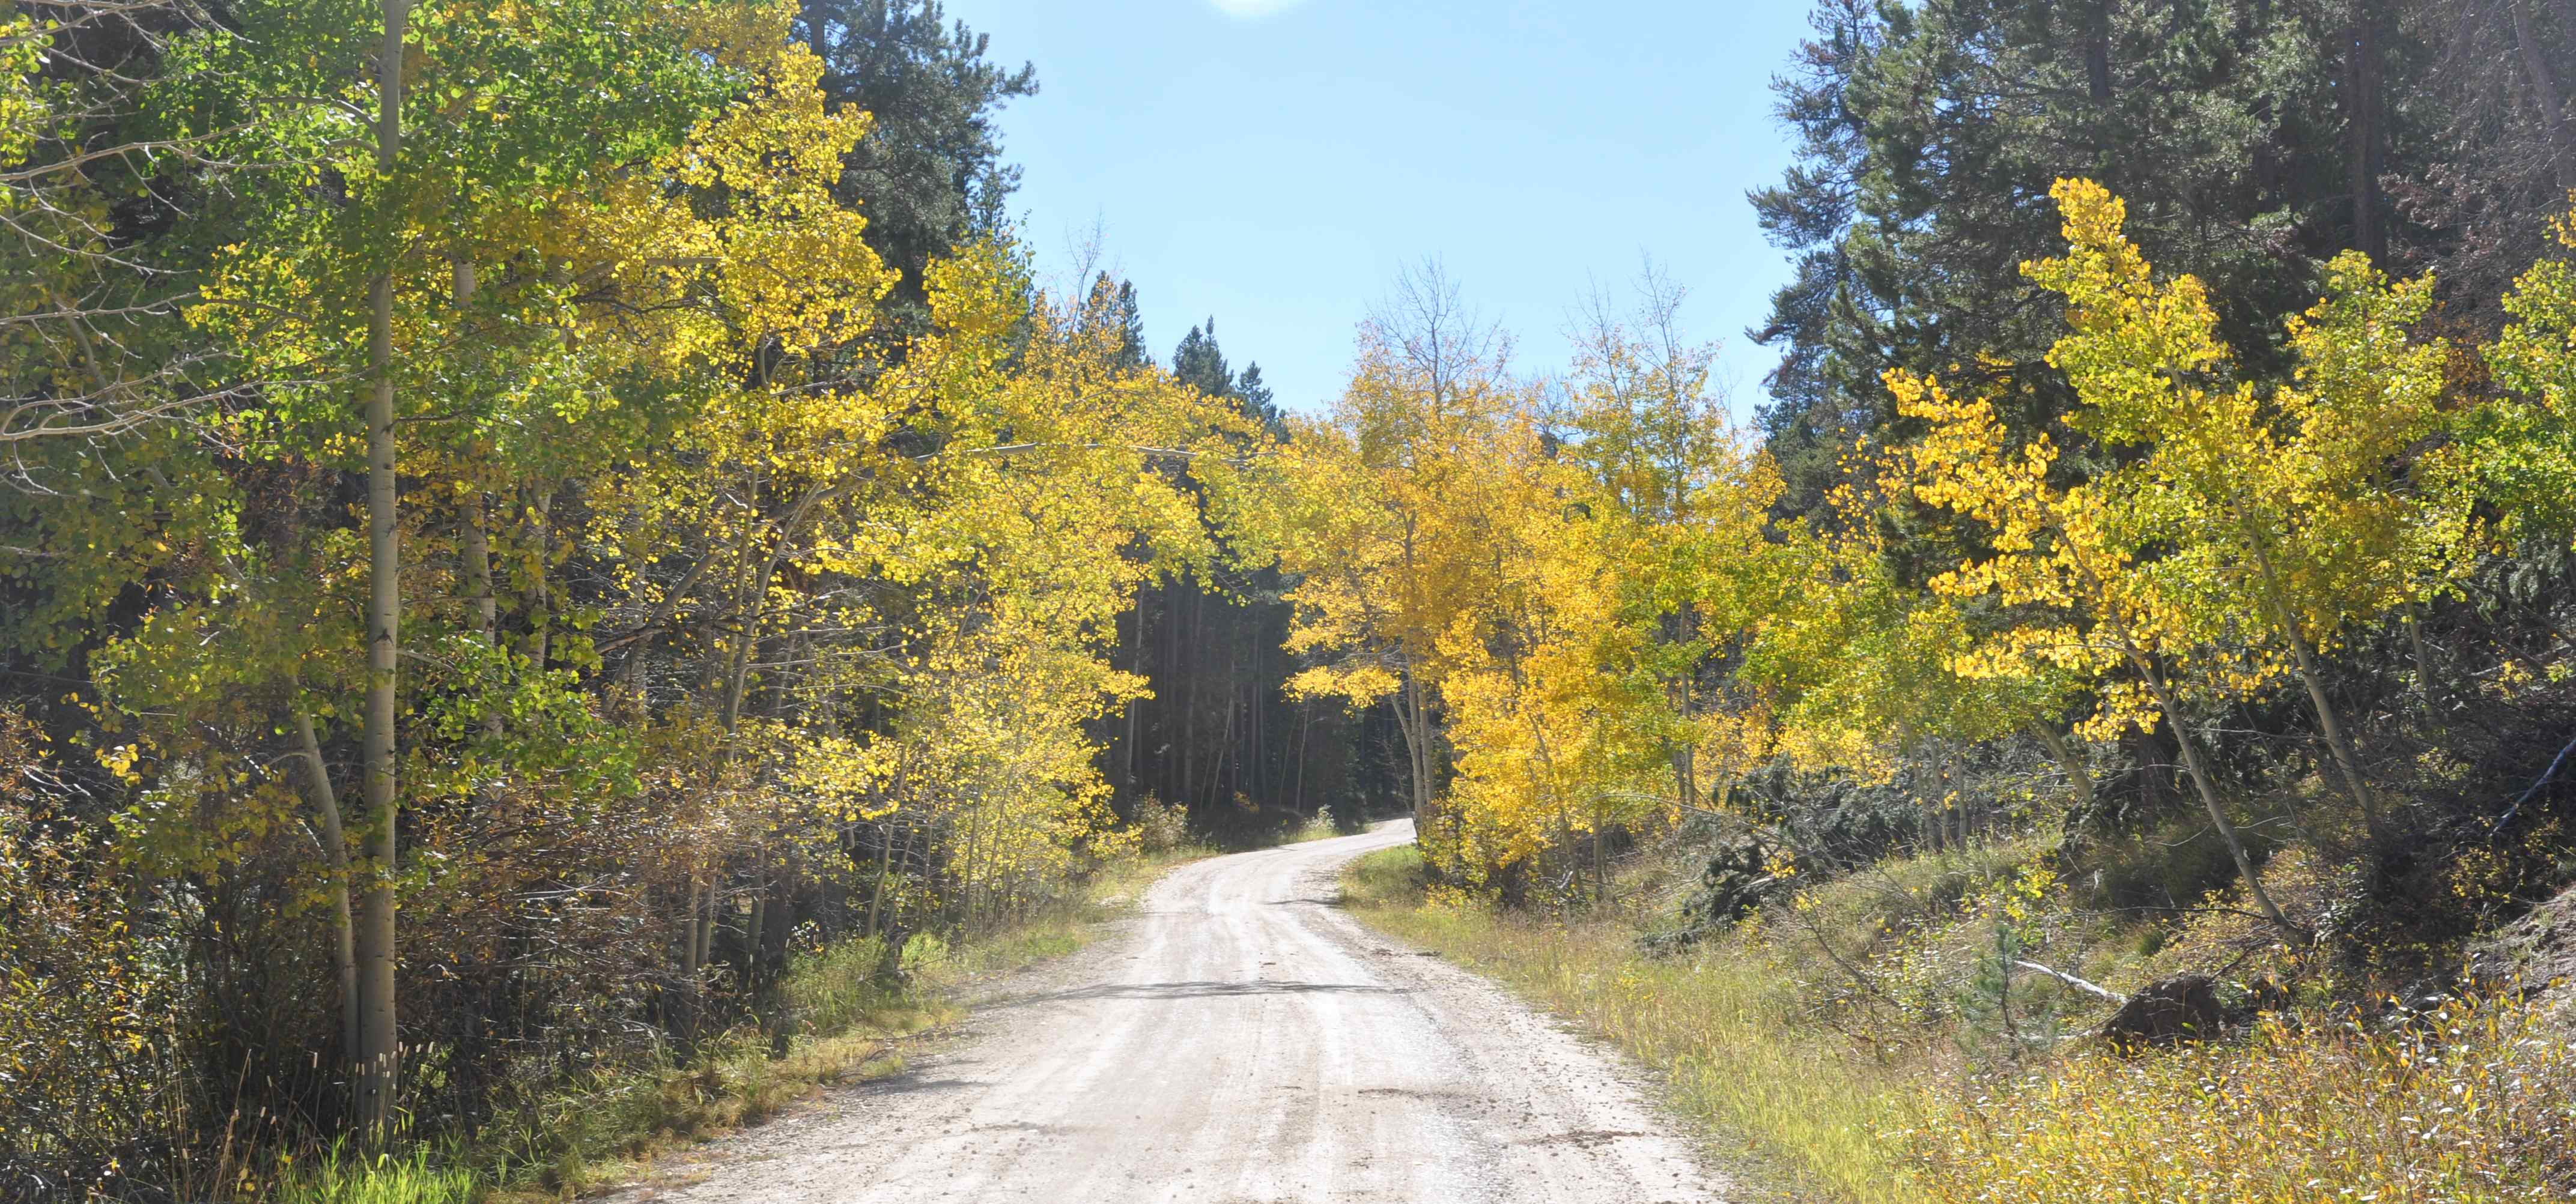 Dirt road with fall colors on both sides